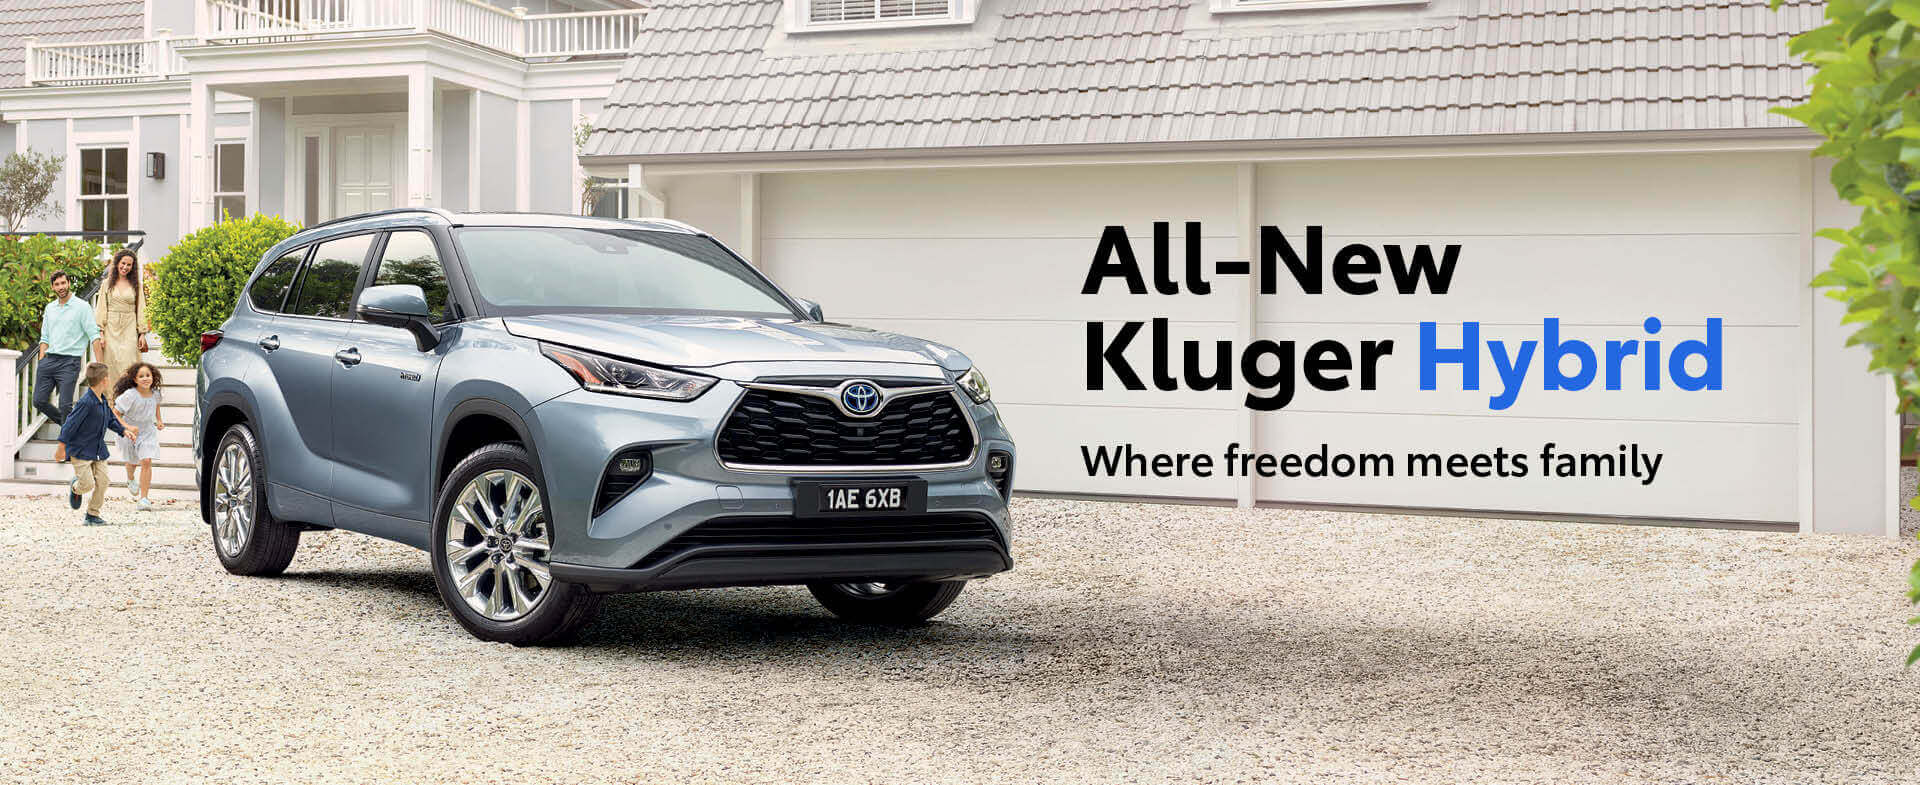 All-New Kluger Hybrid - Where freedom meets family